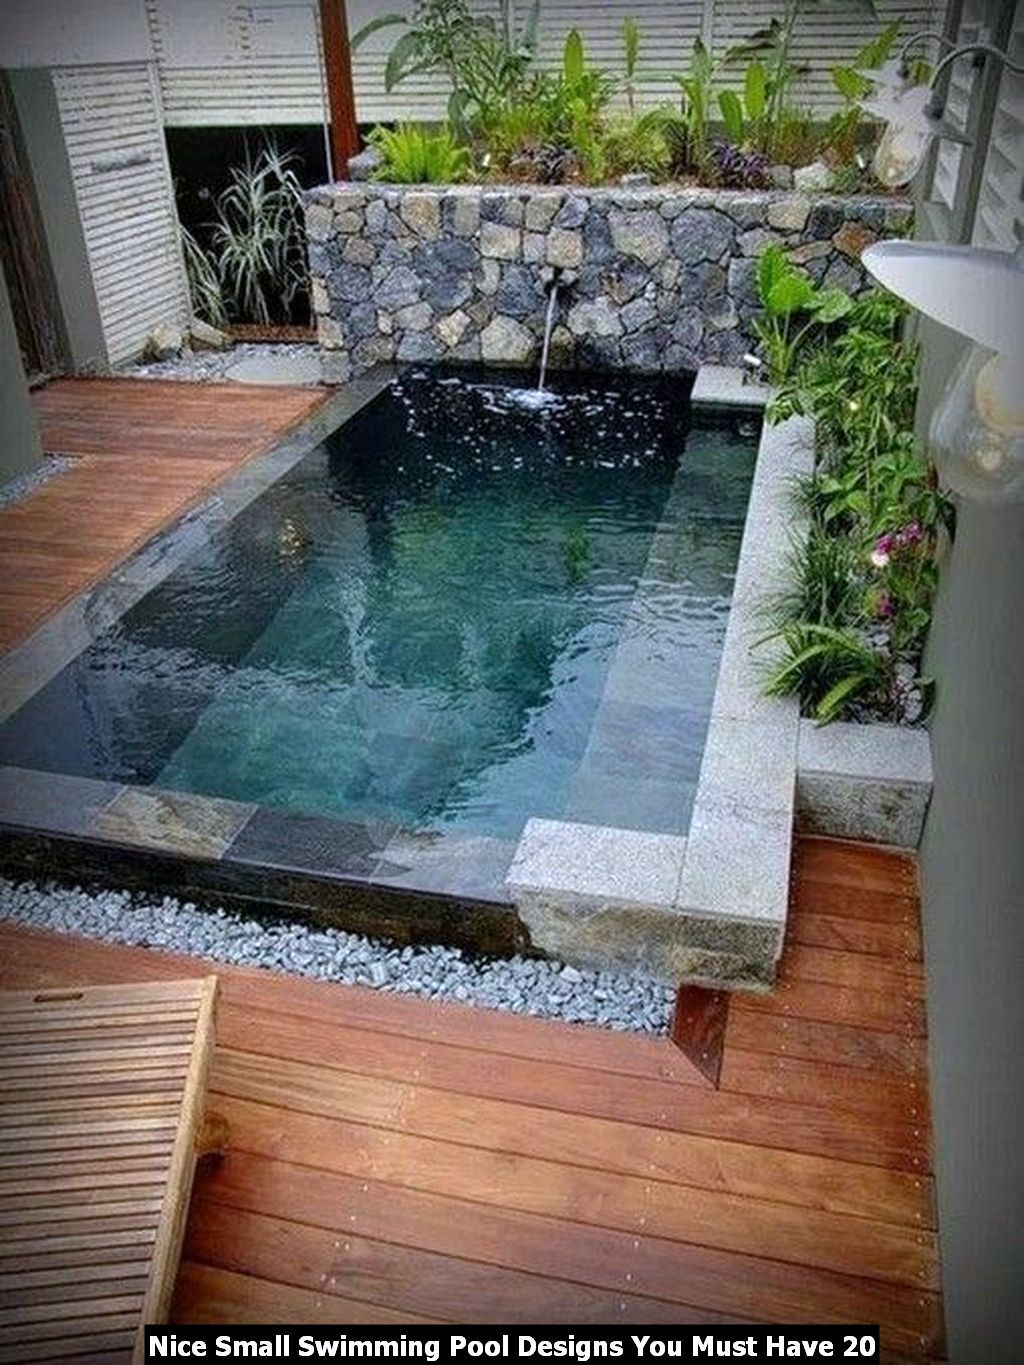 Nice Small Swimming Pool Designs You Must Have Pimphomee Small Pool Design Small Backyard Pools Backyard Pool Design Mini pool in backyard